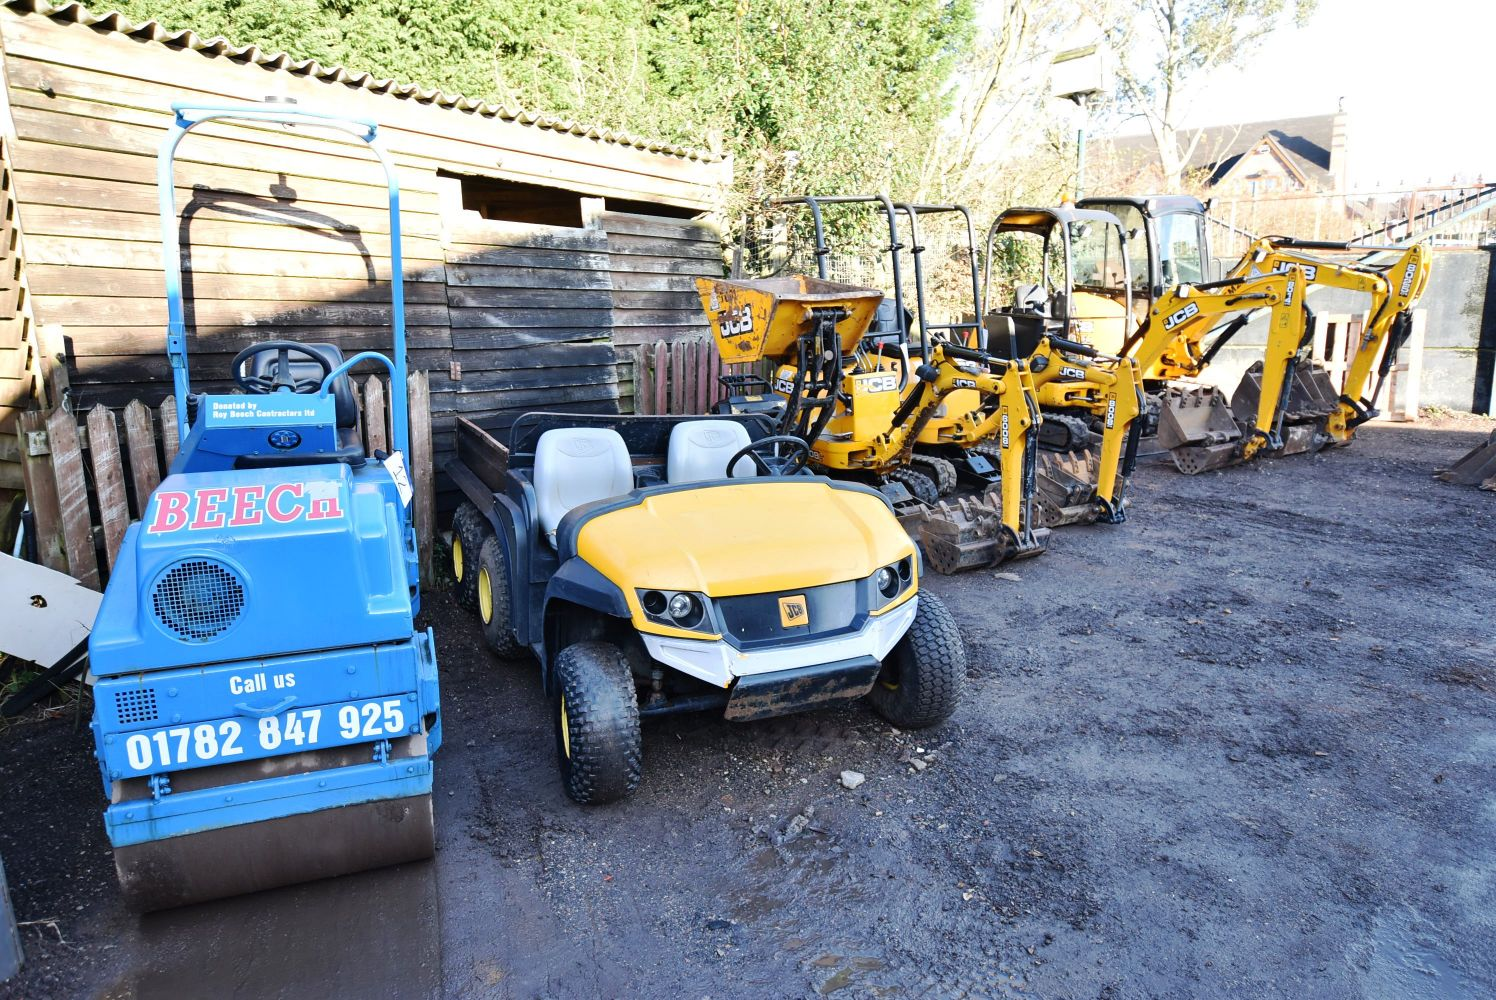 Short Notice Online Auction - Contractors Plant & Equipment, Private, Commercial and Military Vehicles